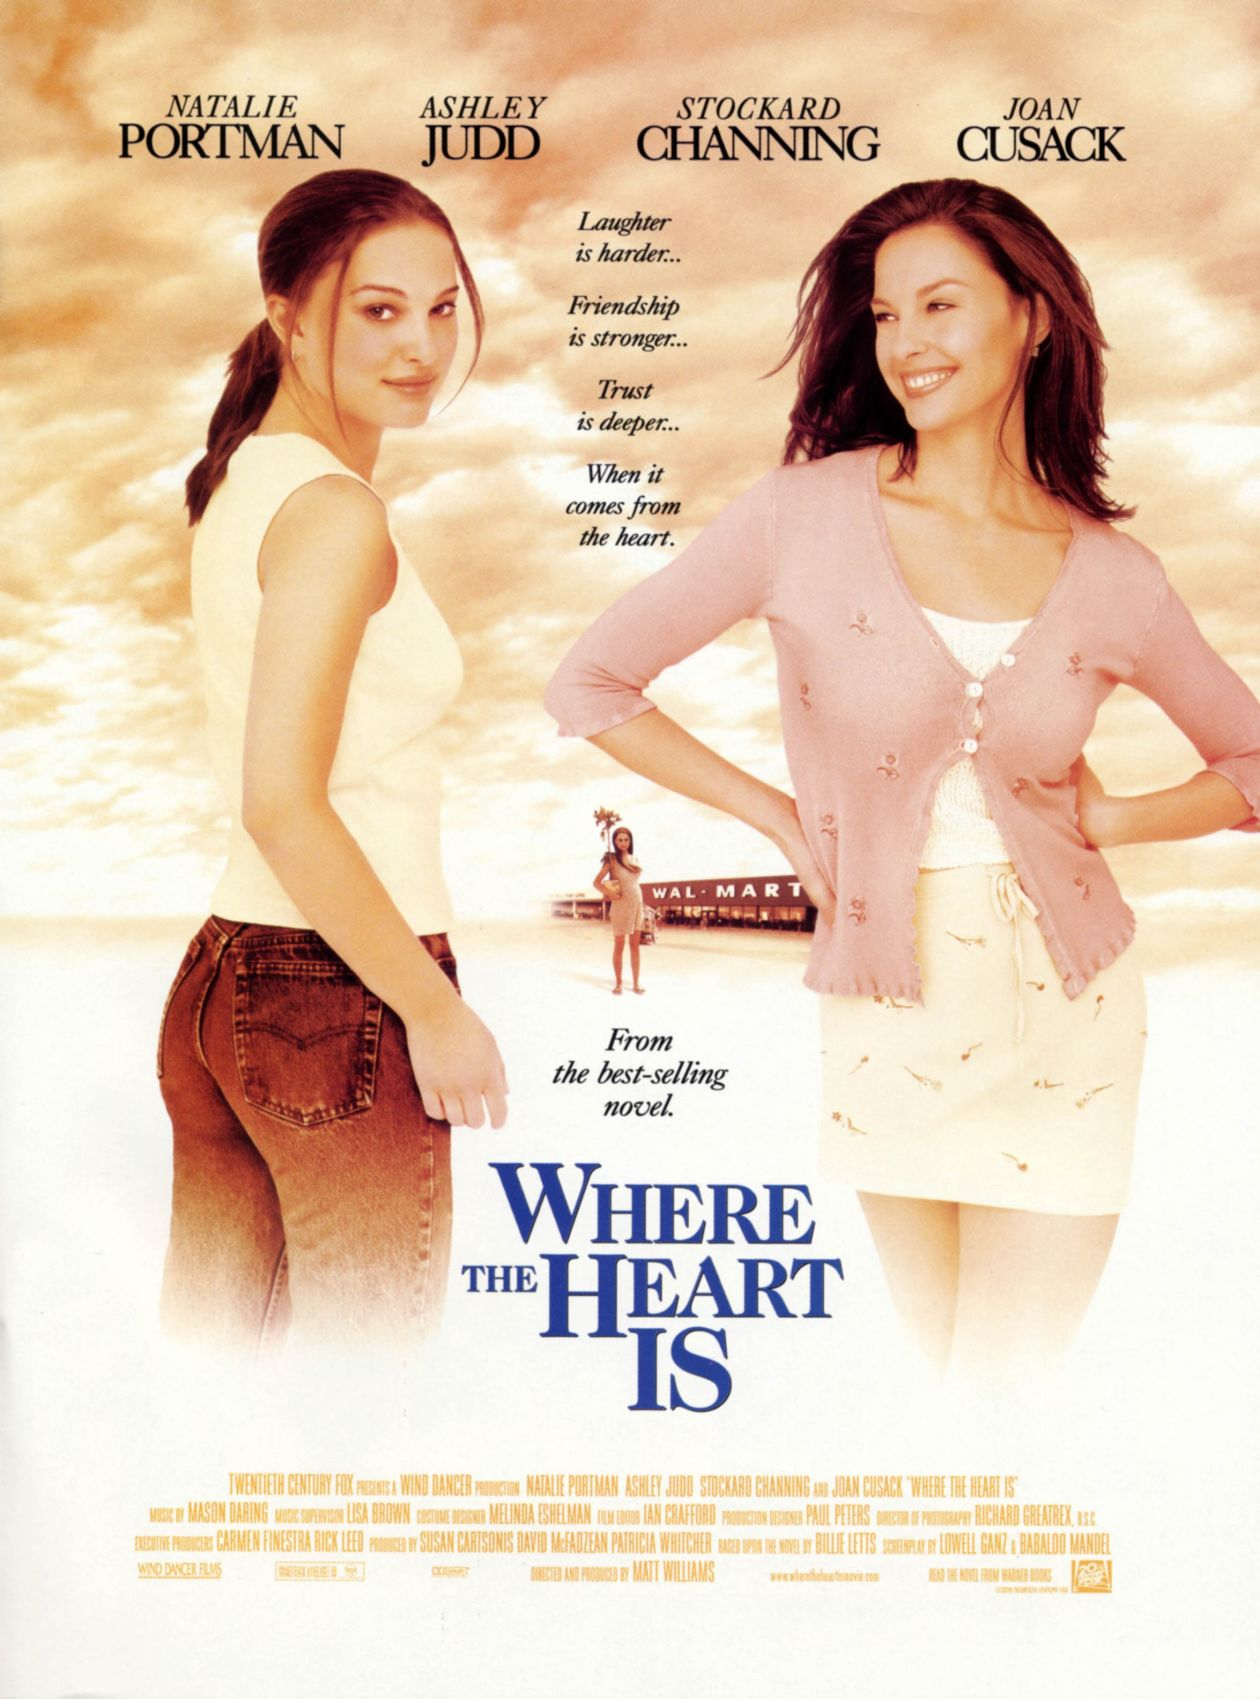 Natalie Portman actress / Where the Heart Is / Matt Williams 2000 Movie Poster Affiche film